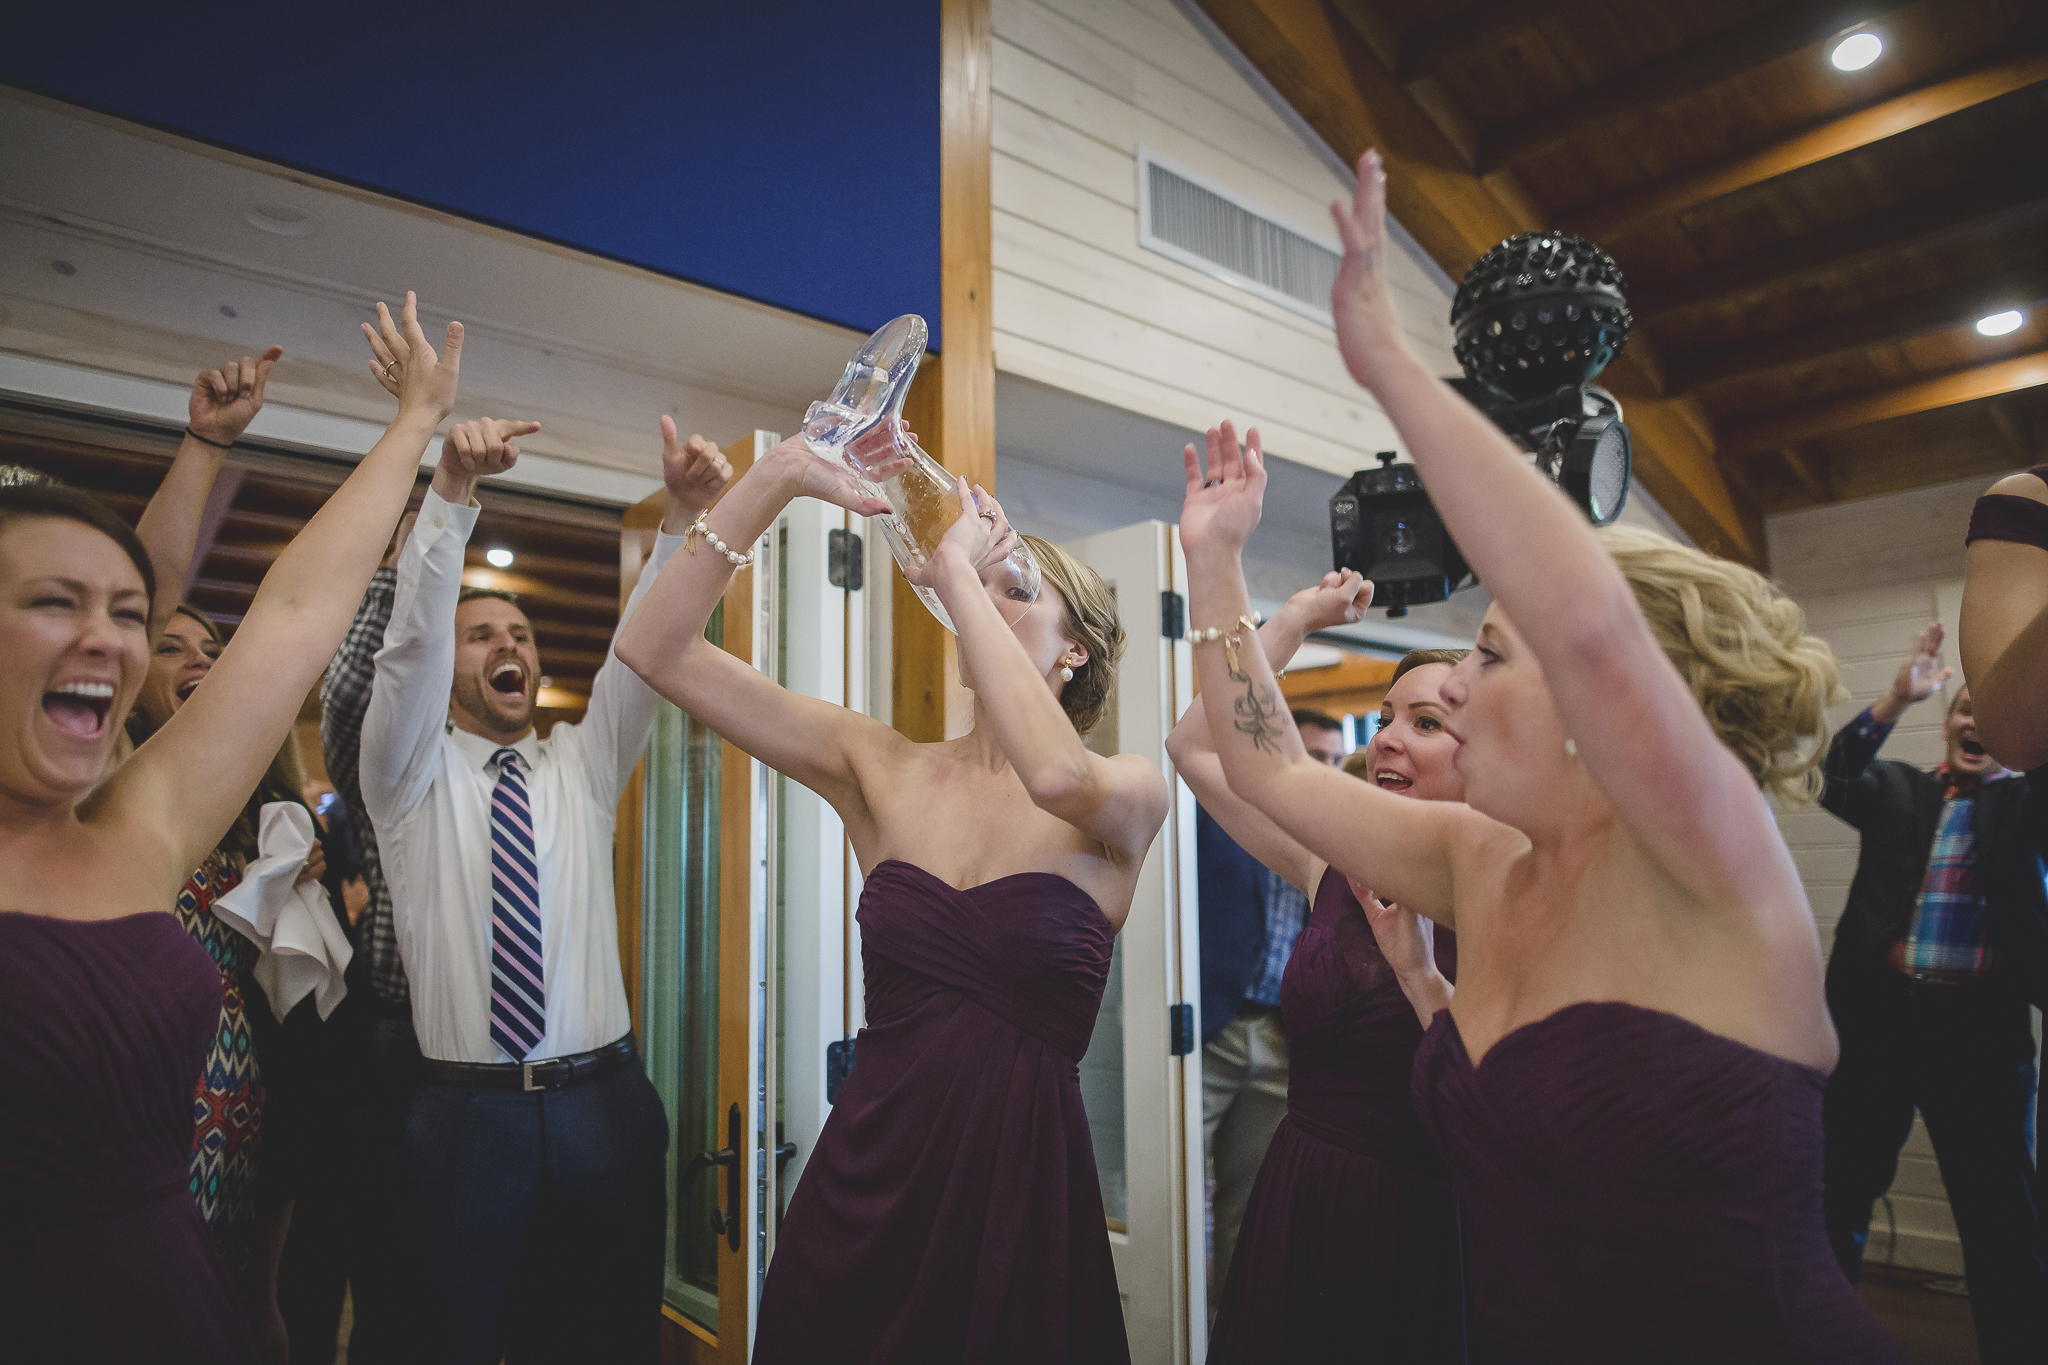 north woods cabin wedding photography-23.jpg